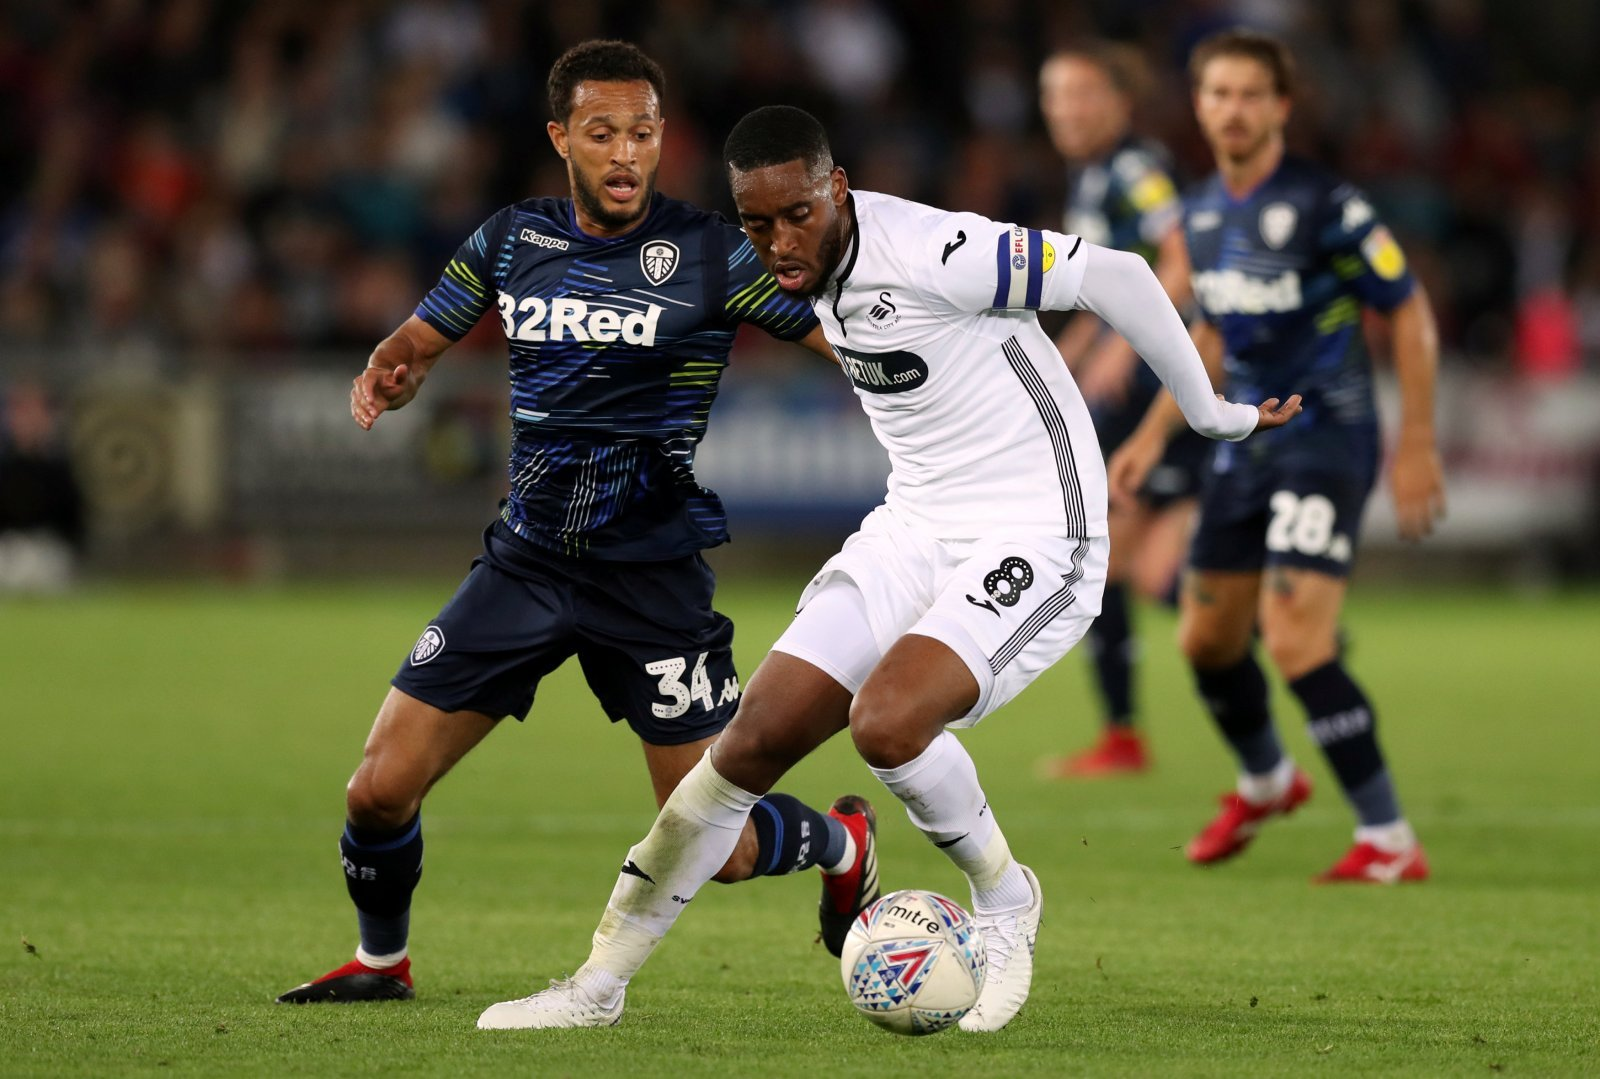 Leroy Fer could have been a much better option than Carroll for Villa